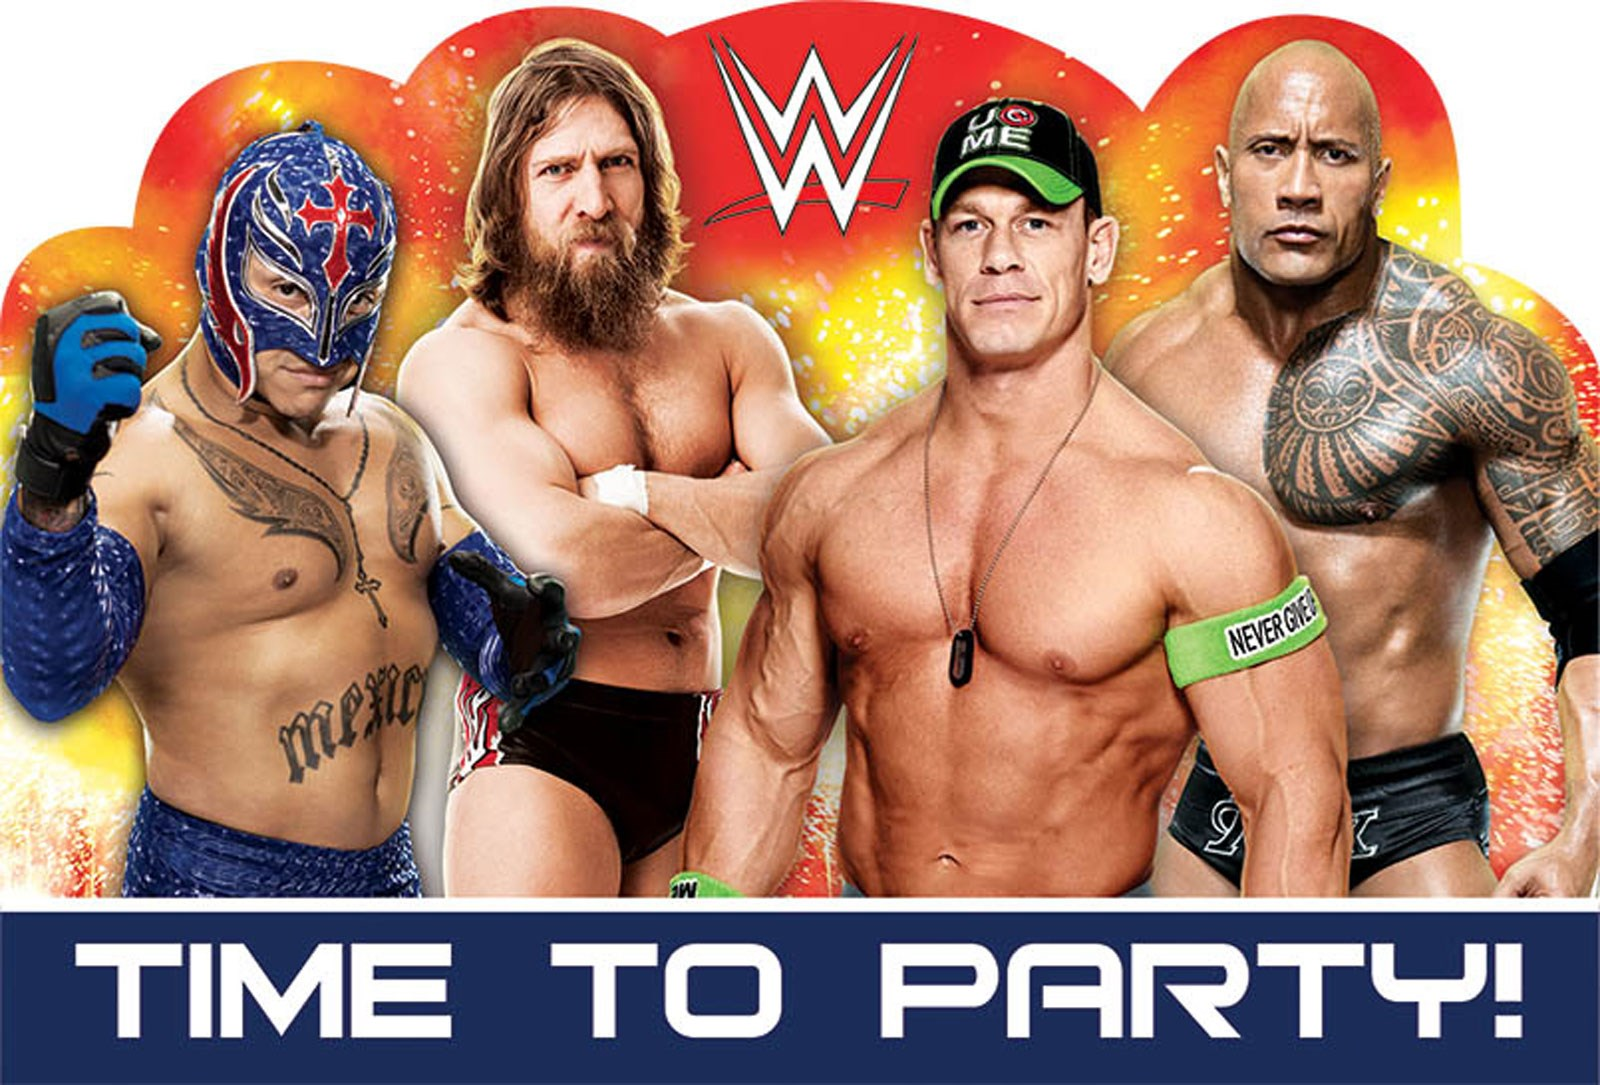 WWE Party Invitations 8